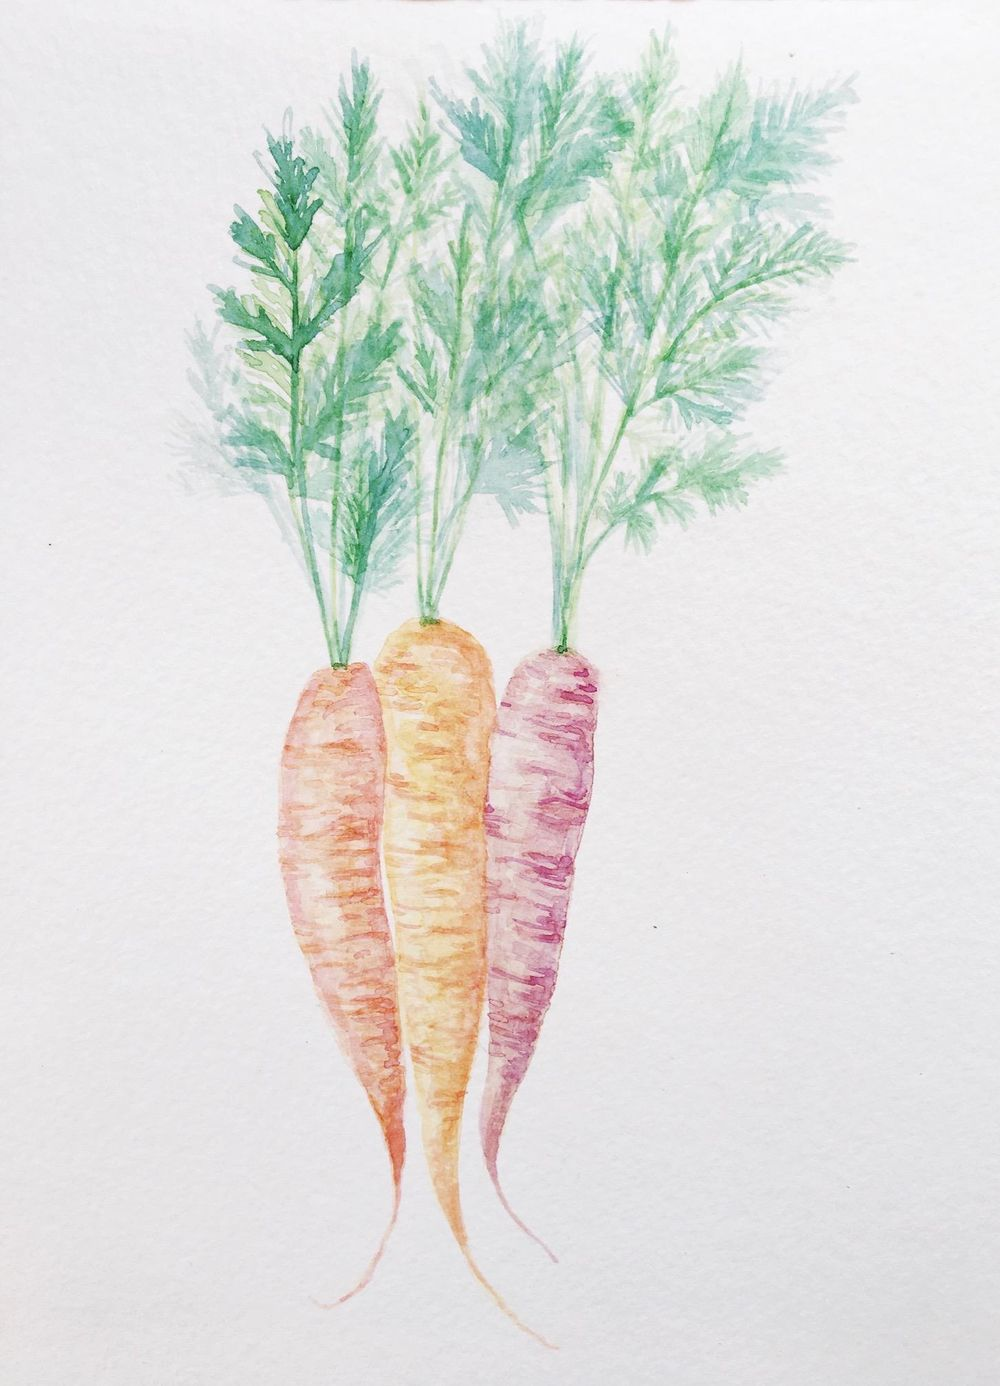 Painting veggies - image 1 - student project